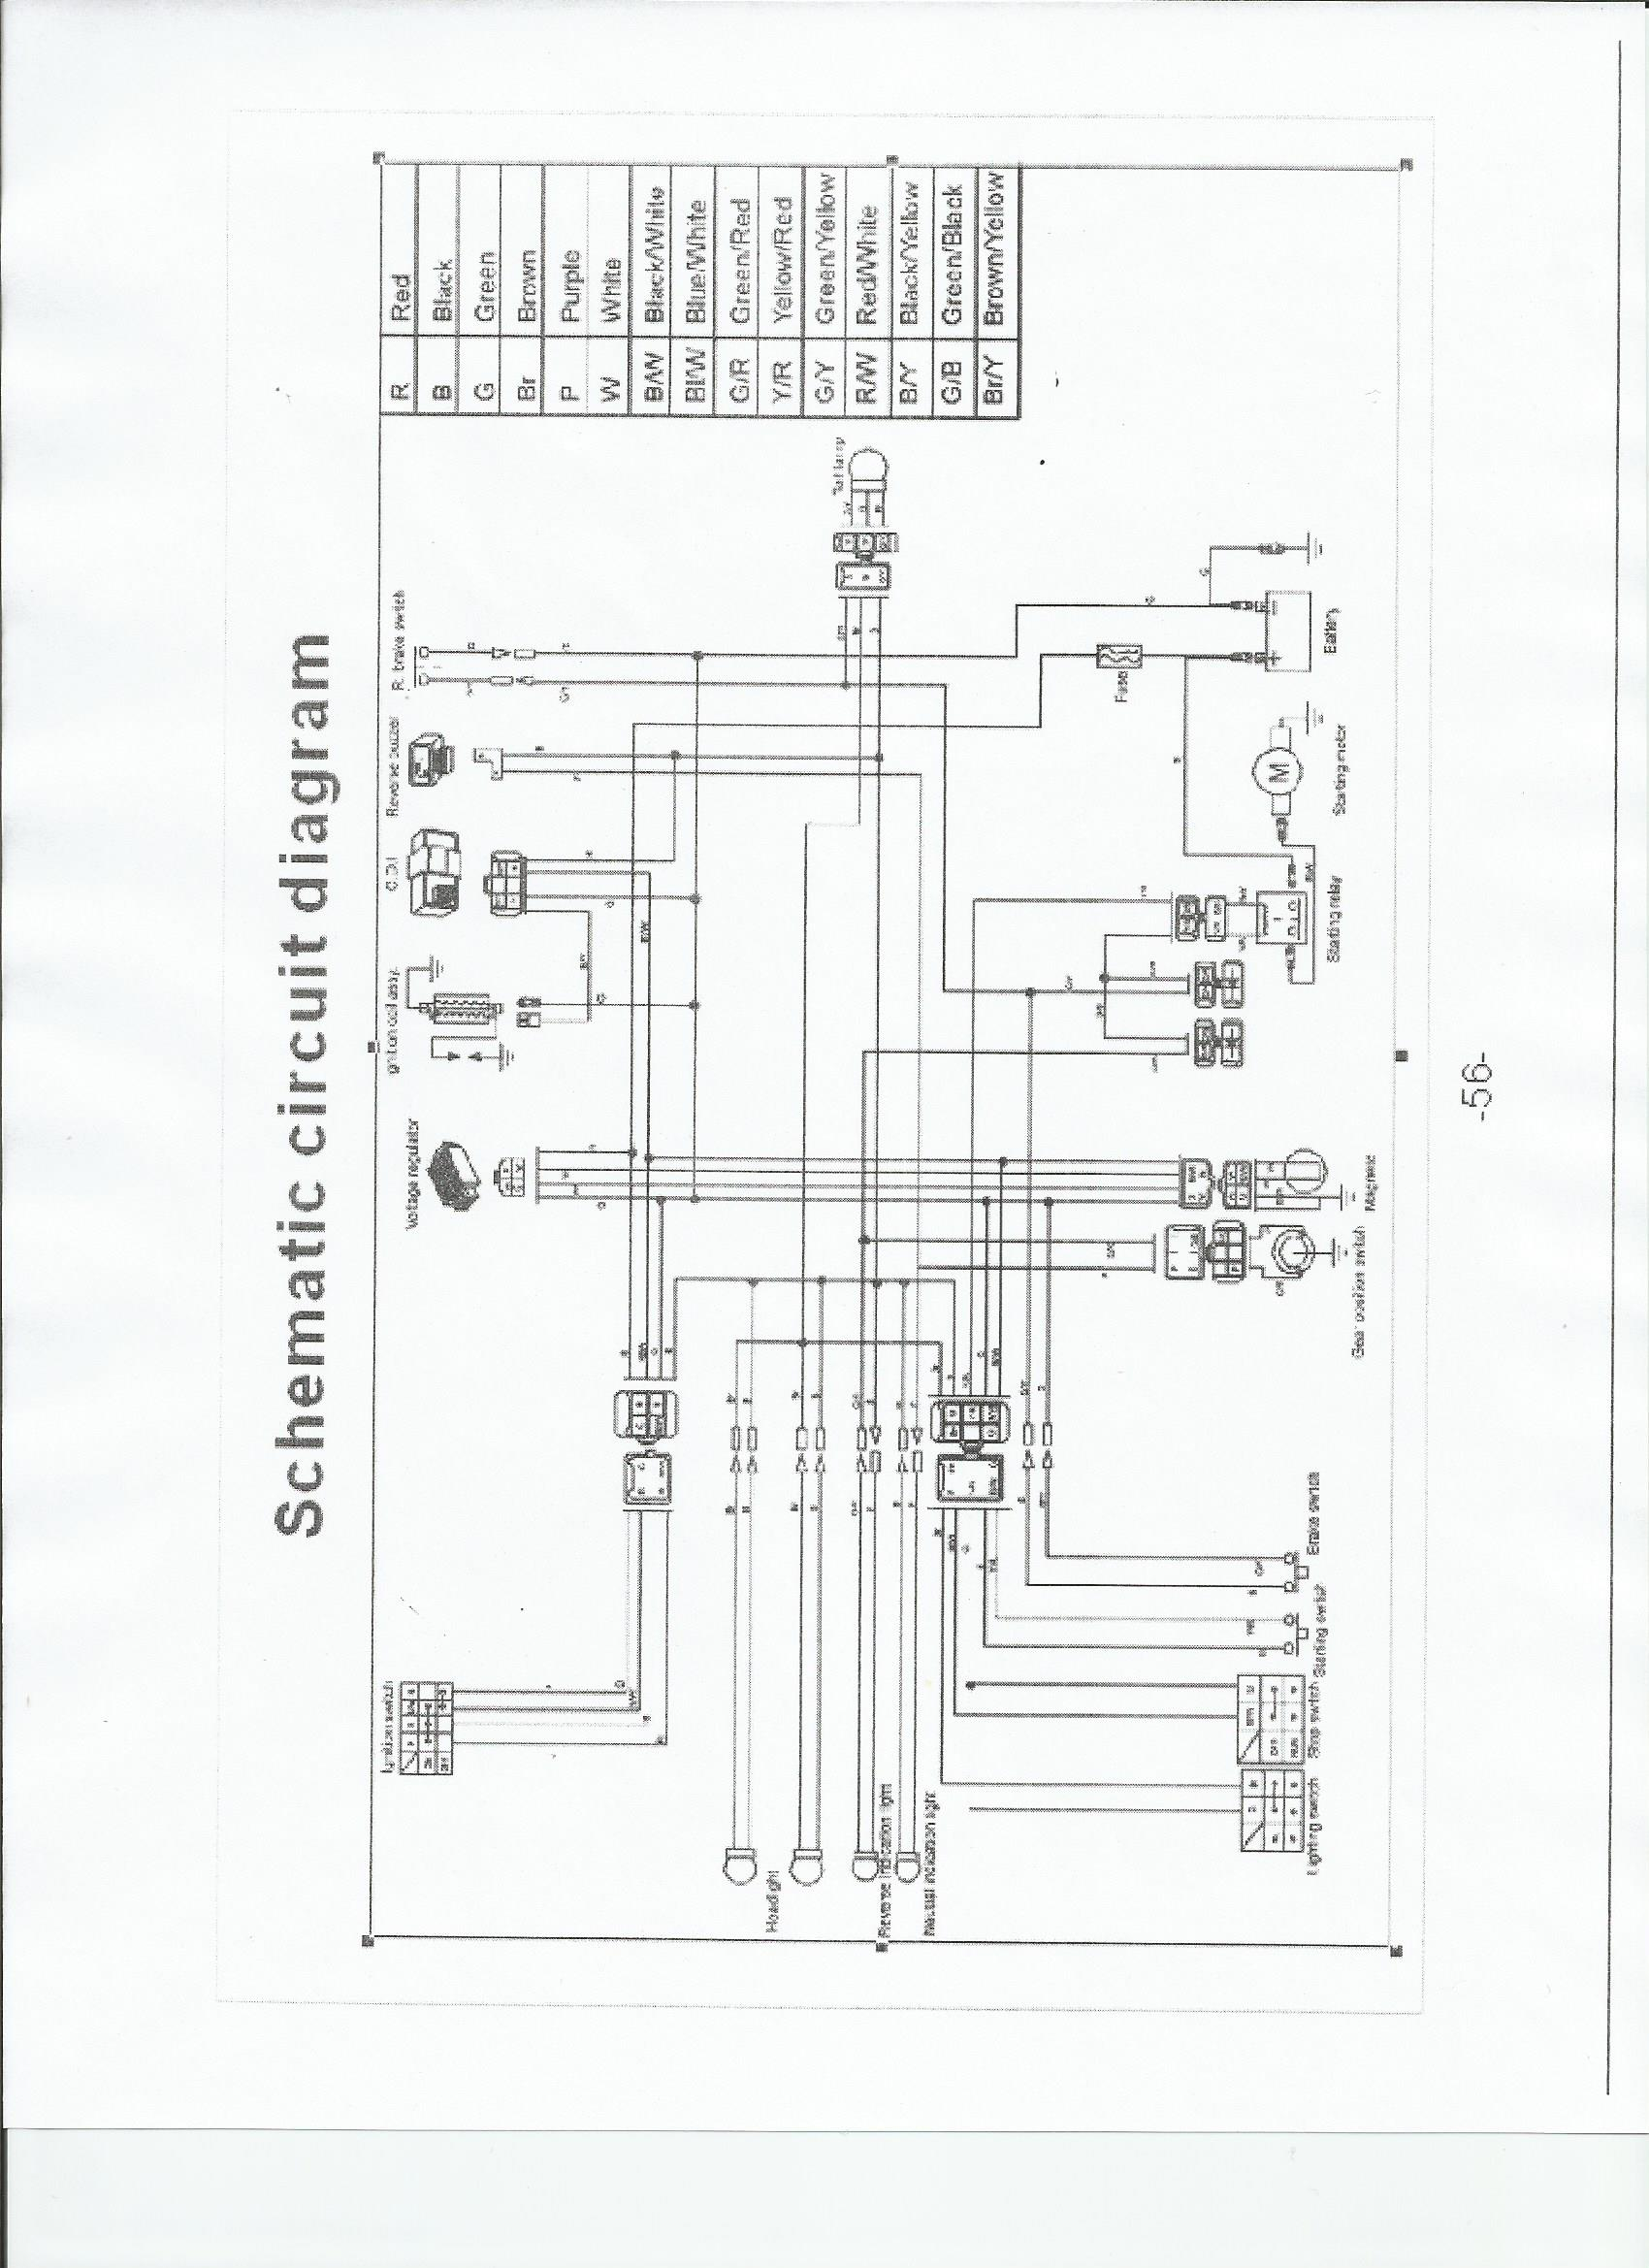 hight resolution of taotao mini and youth atv wiring schematic familygokarts support wiring diagram for a quad tao tao